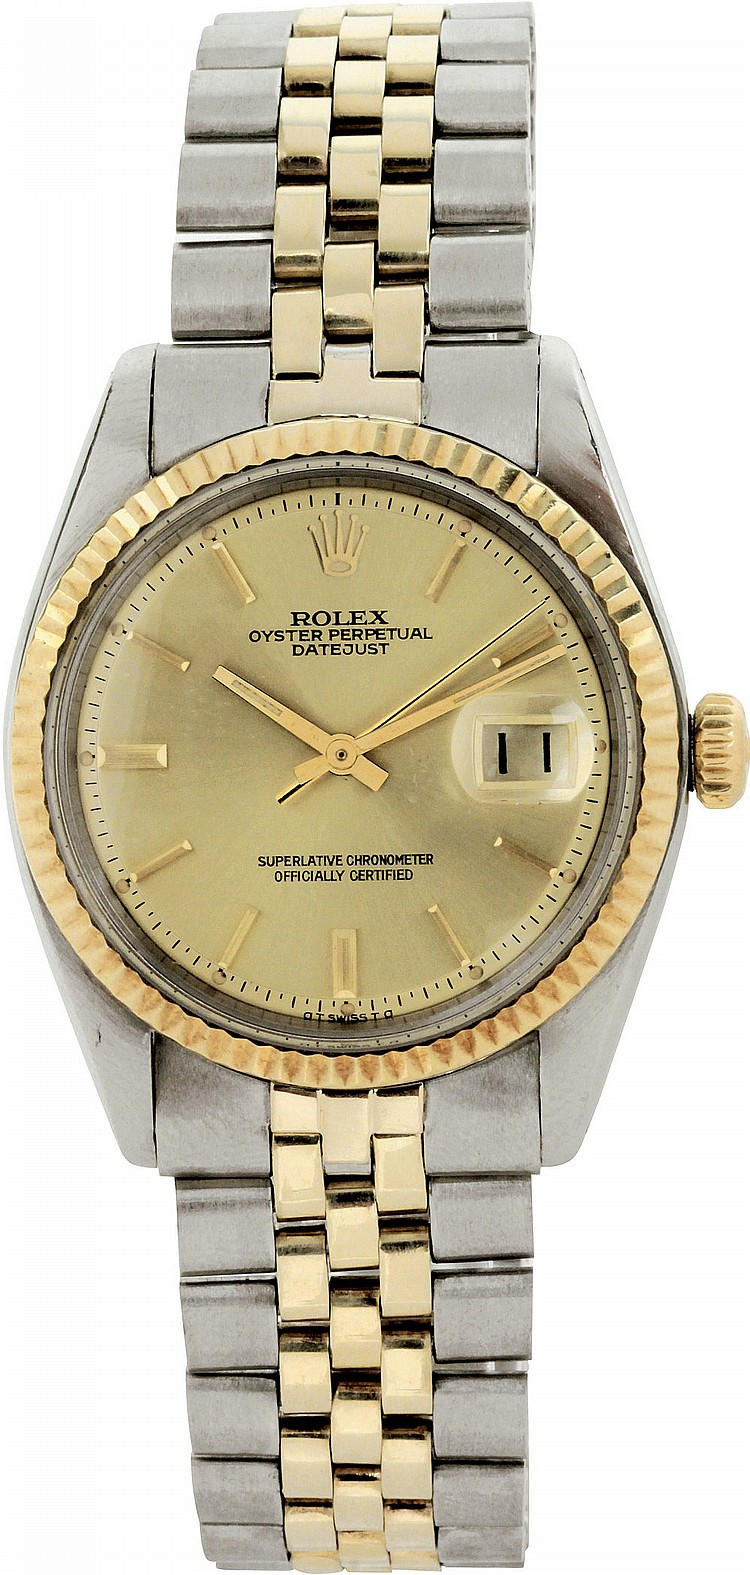 Rolex Oyster Perpetual Datejust ref. 1601, 1975